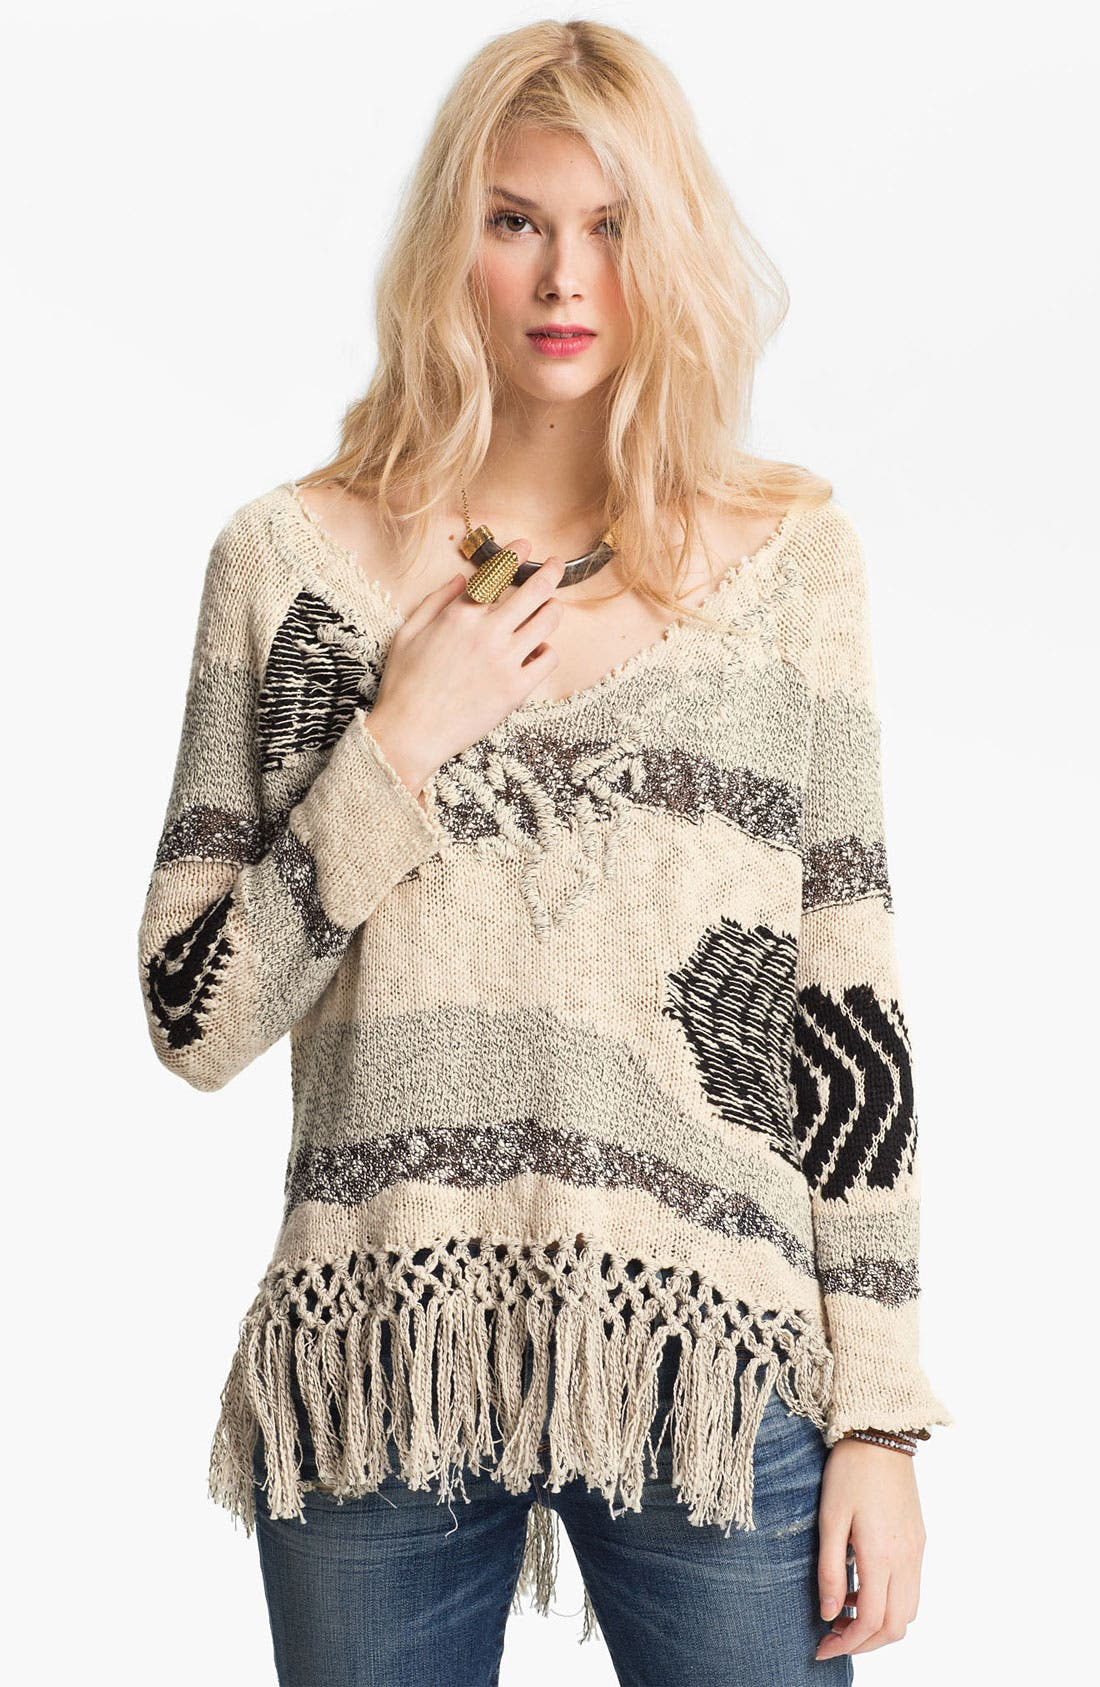 Alternate Image 1 Selected - Free People 'Landscape' Fringed Sweater